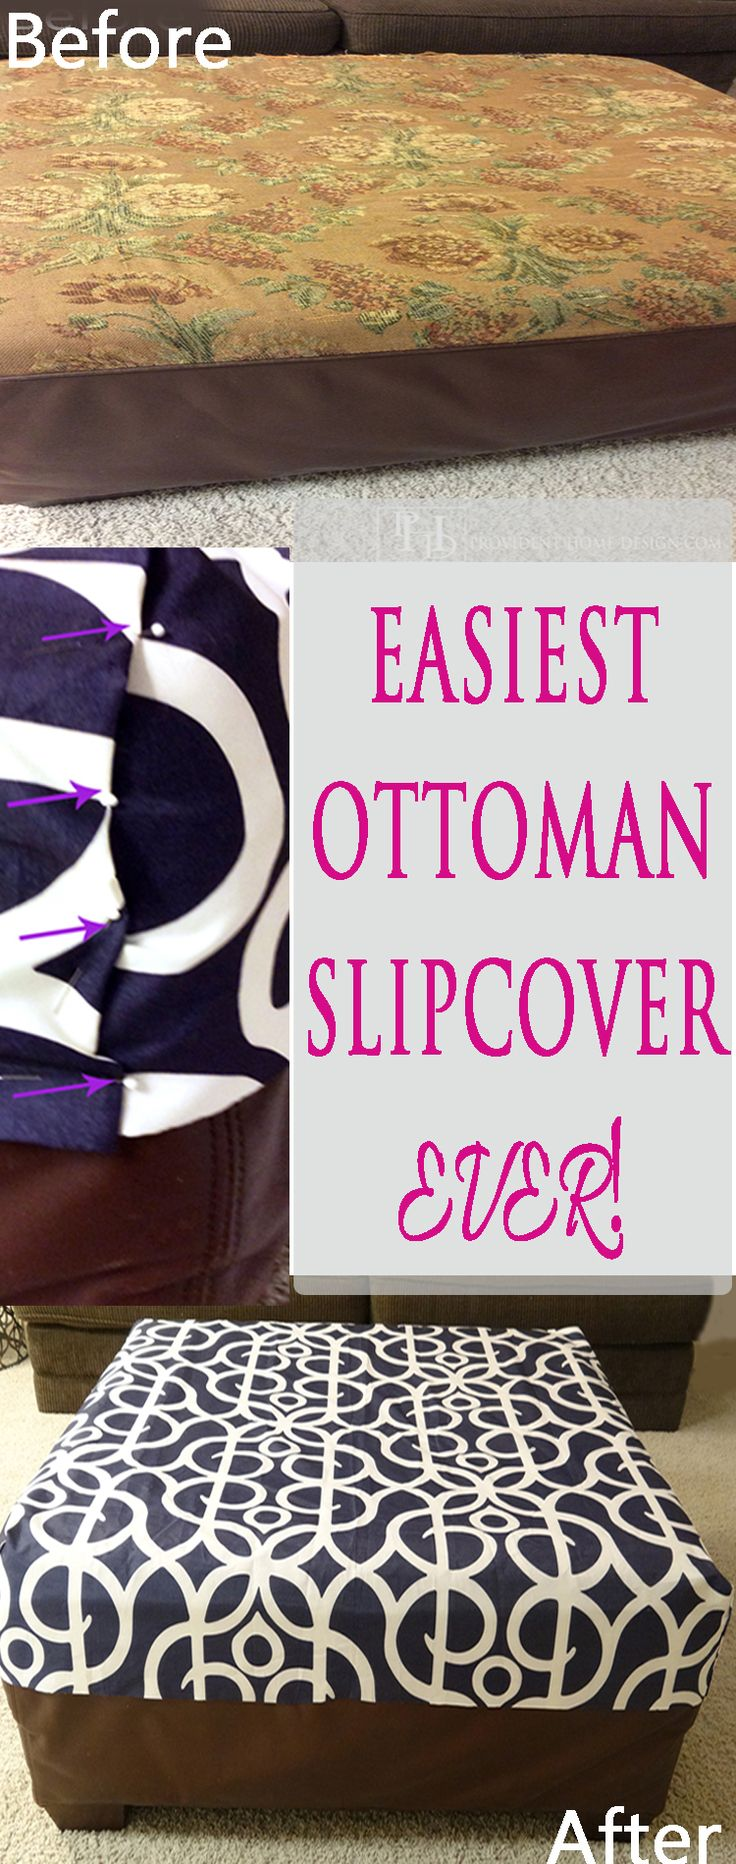 Come read the easiest ottoman slipcover tutorial out there! Step by step instructions with photos!